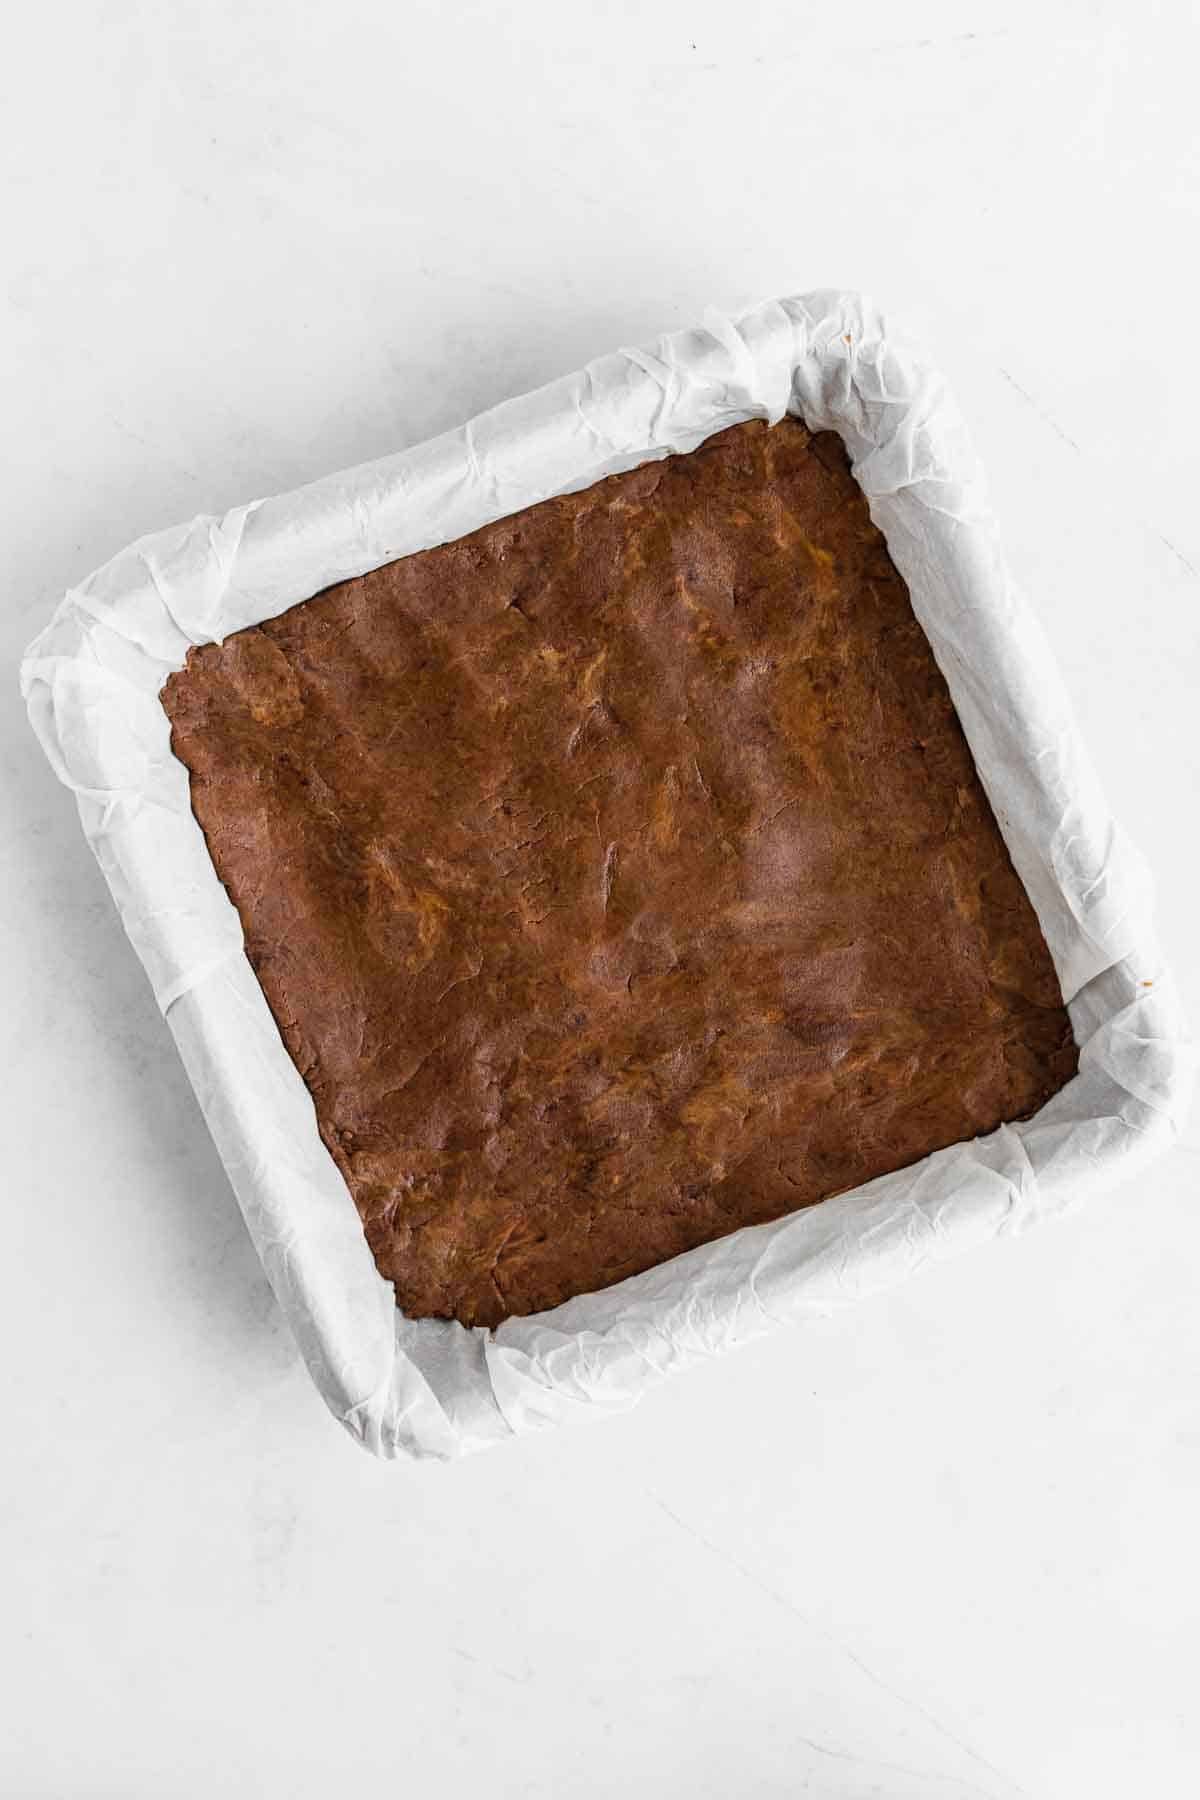 chocolate protein bar dough pressed across the bottom of a square baking dish